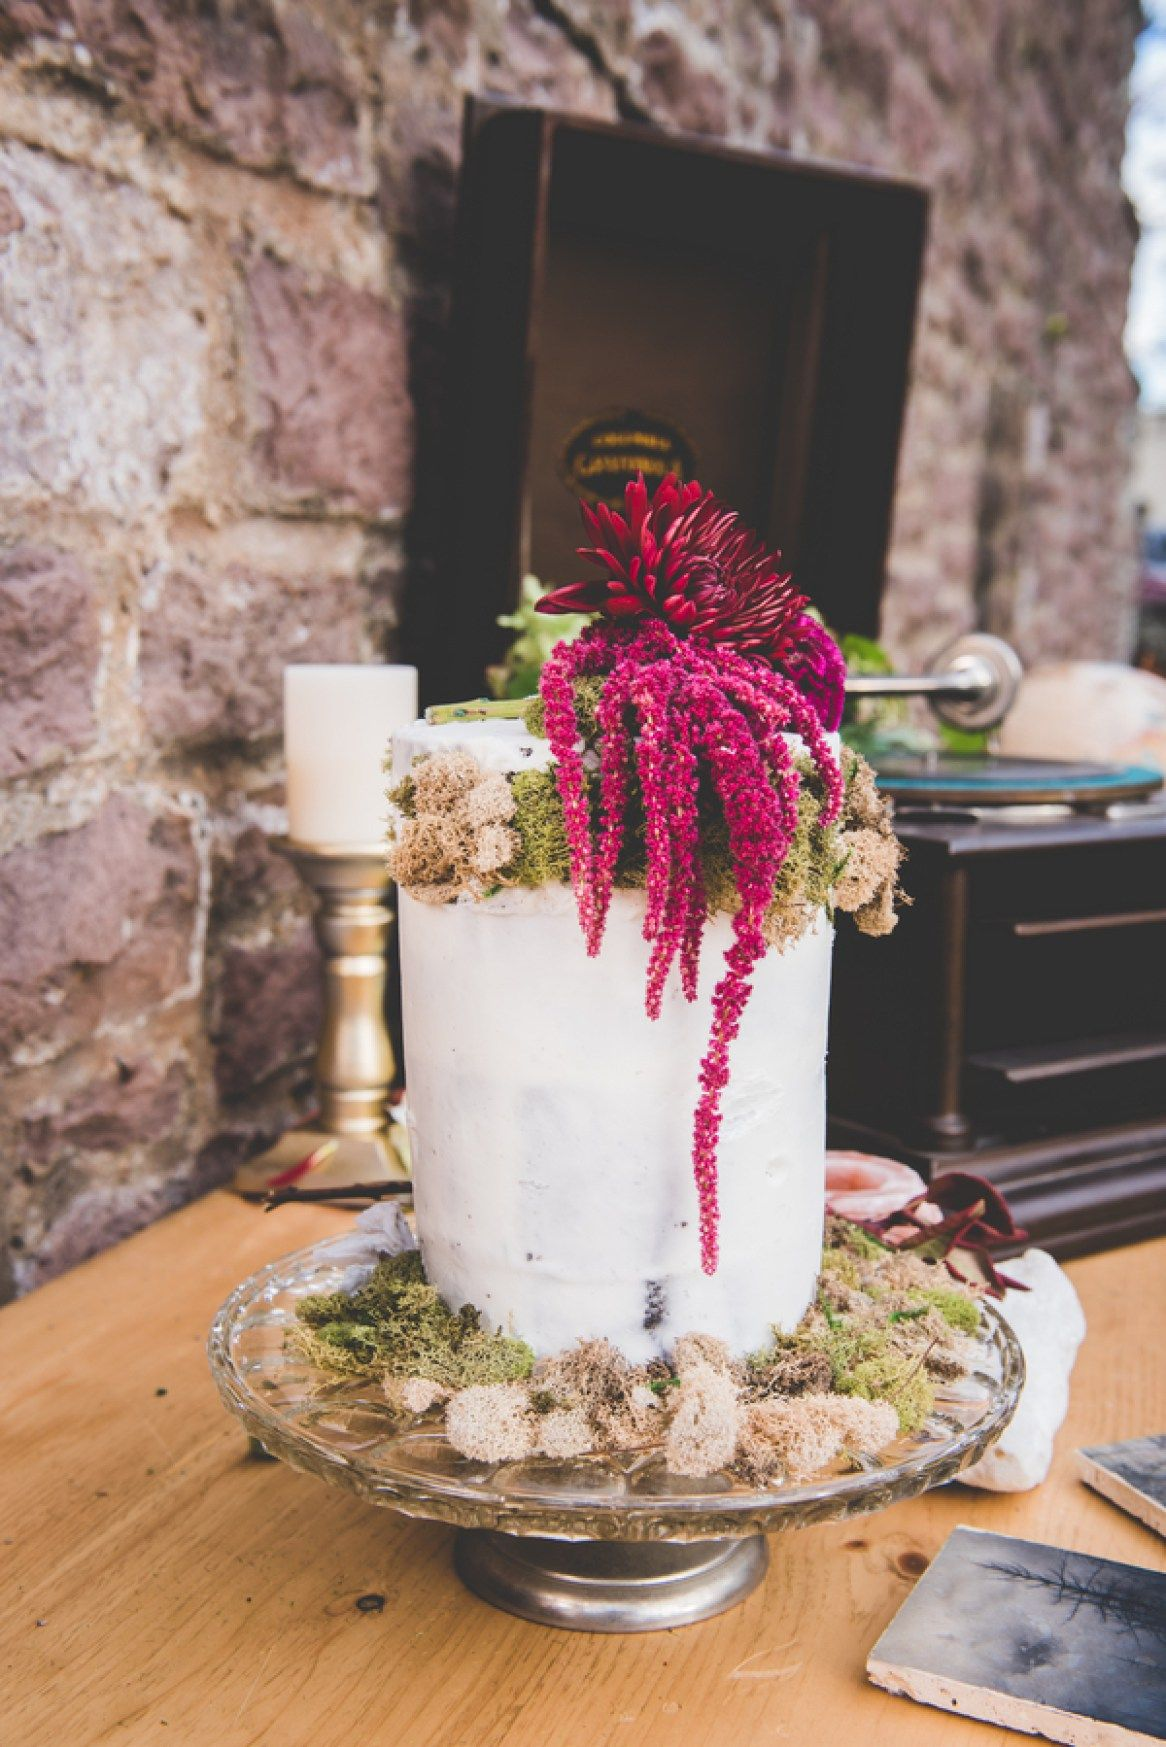 Wedding cake table decor ideas  Fall harvest inspired wedding cake photo by BG Productions via